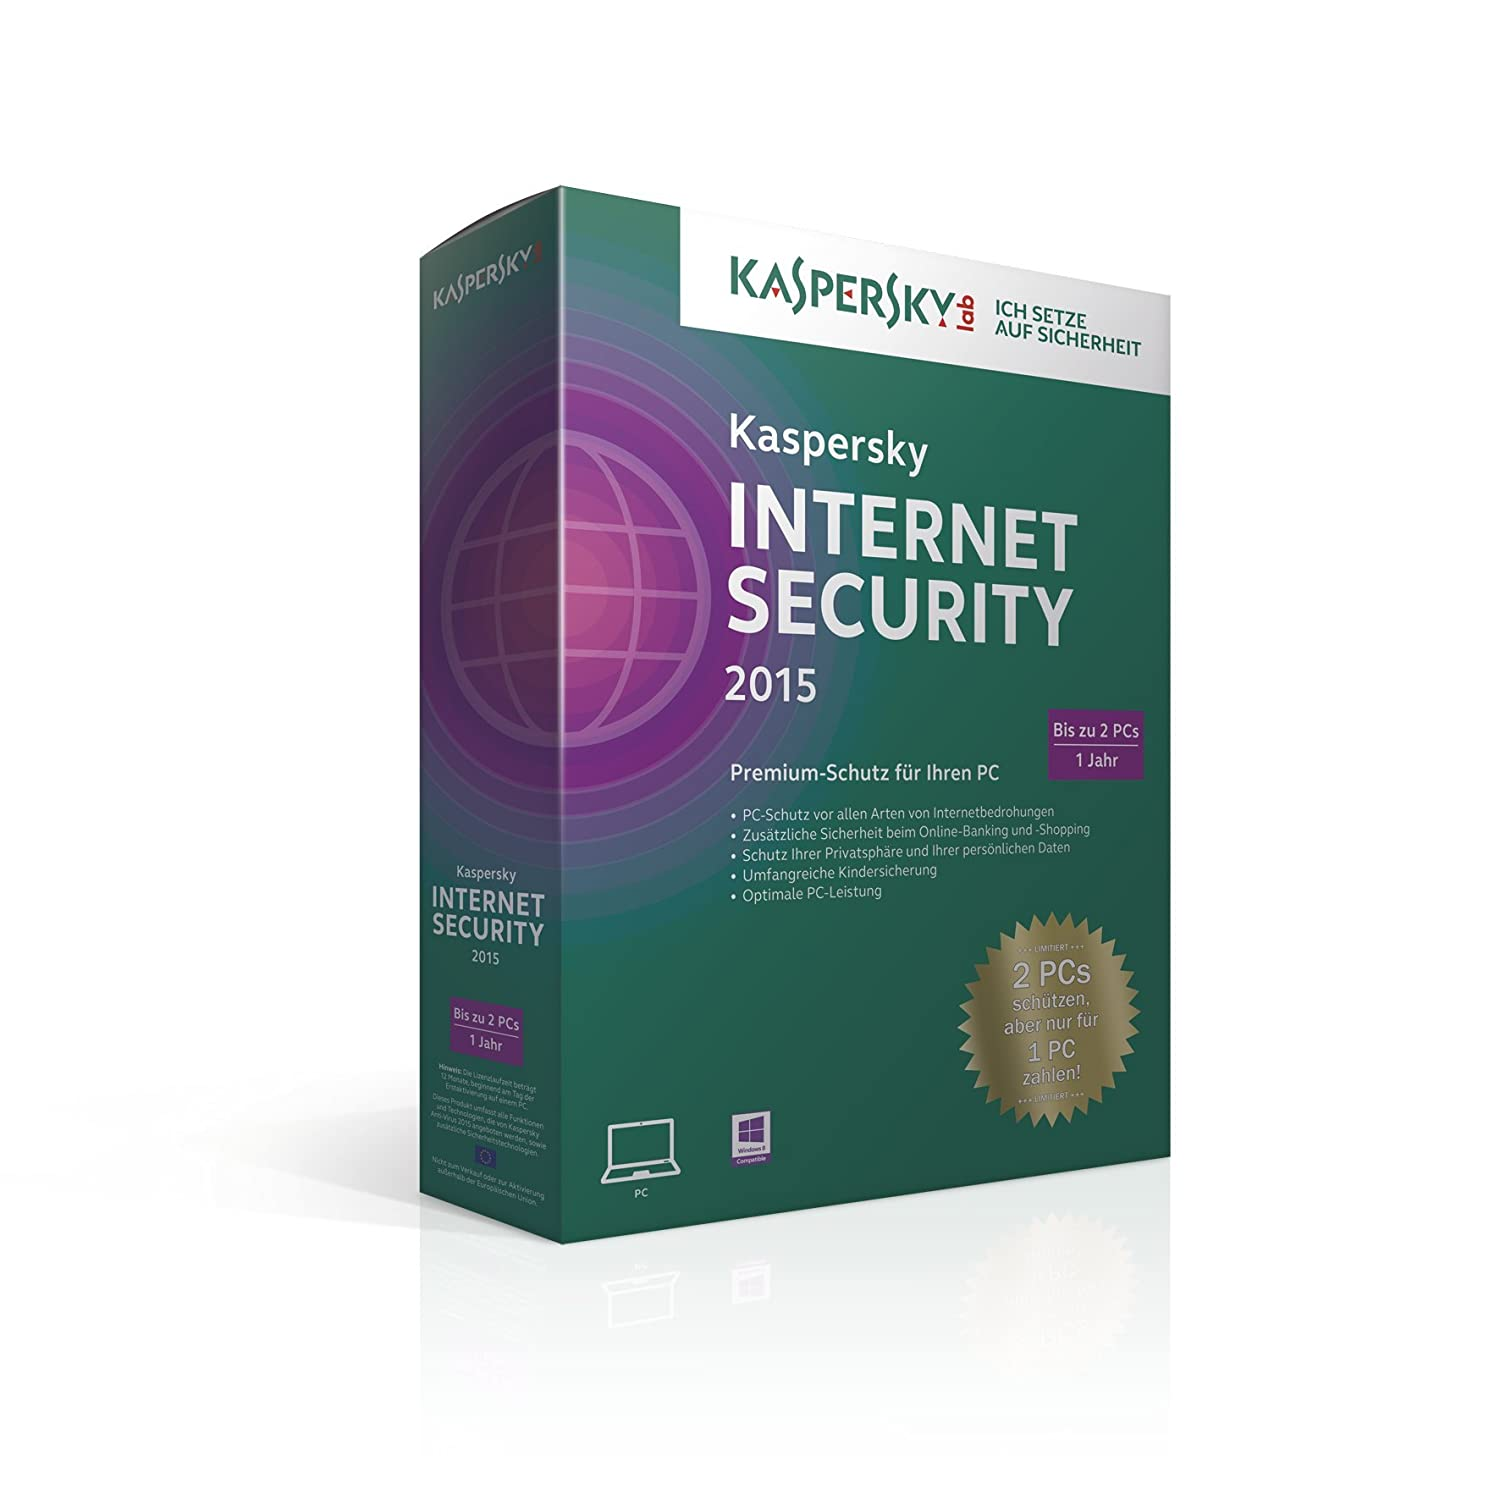 Kaspersky Lab Internet Security 2015, Limited Edition - Seguridad y antivirus (Limited Edition, Caja, Completo, 2 usuario(s), 480 MB, 512 MB, ...